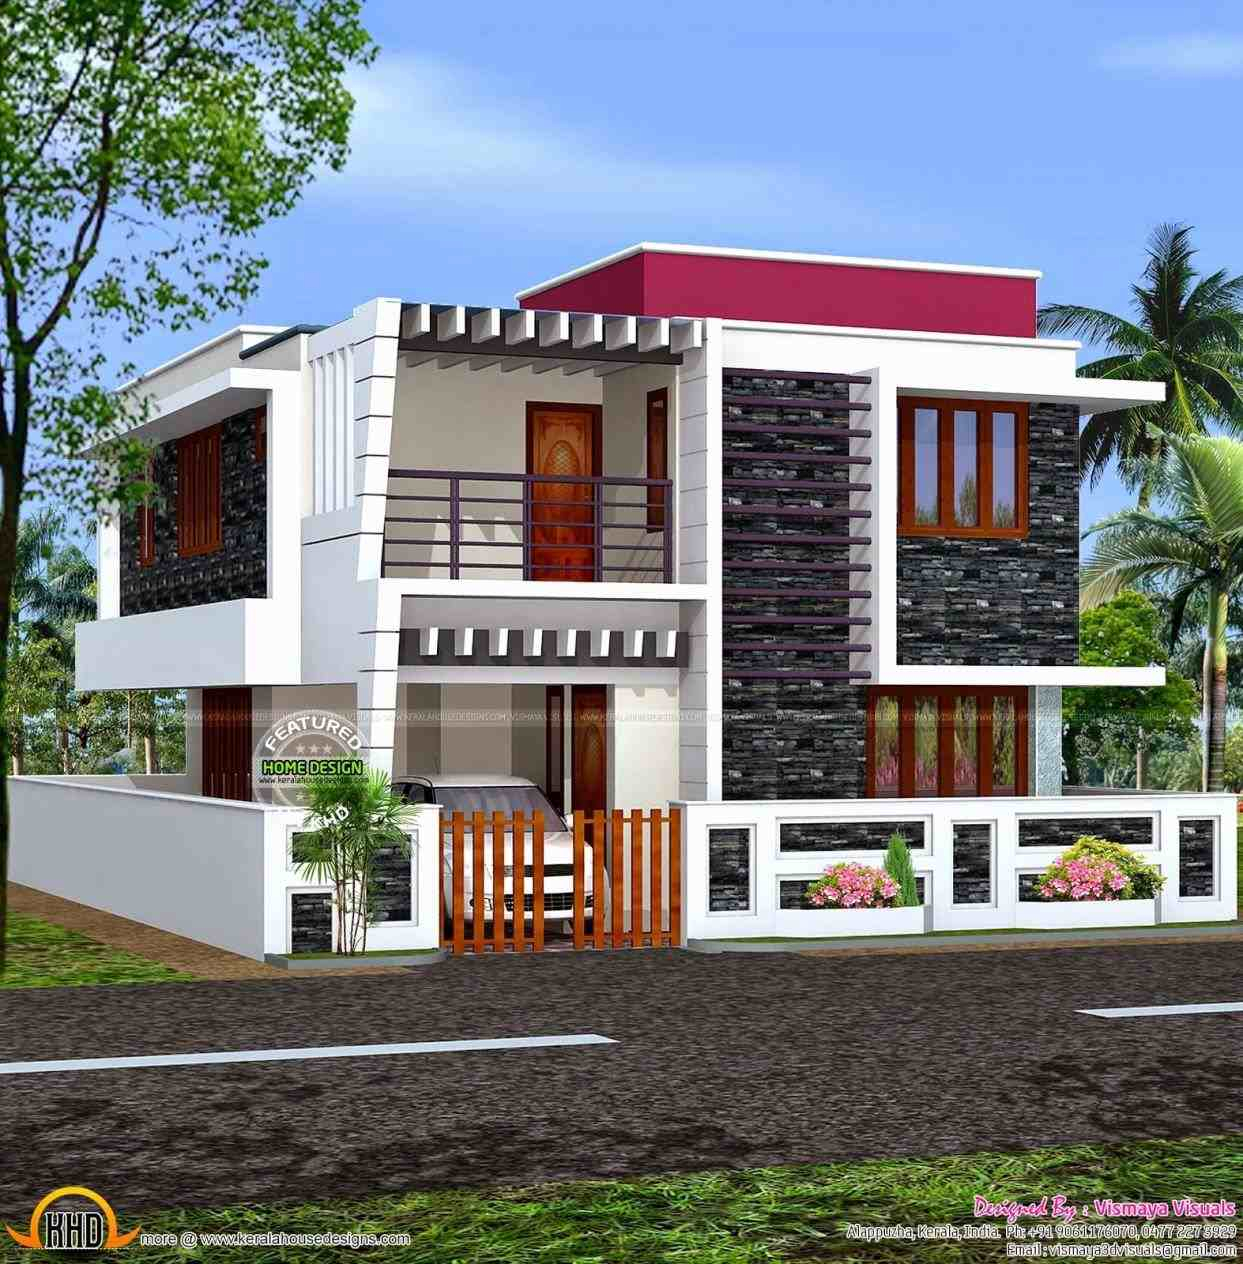 Glamorous Good Looking Home Exterior Design Indian Style New In Painting intended for Awesome Indian Home Exterior Design